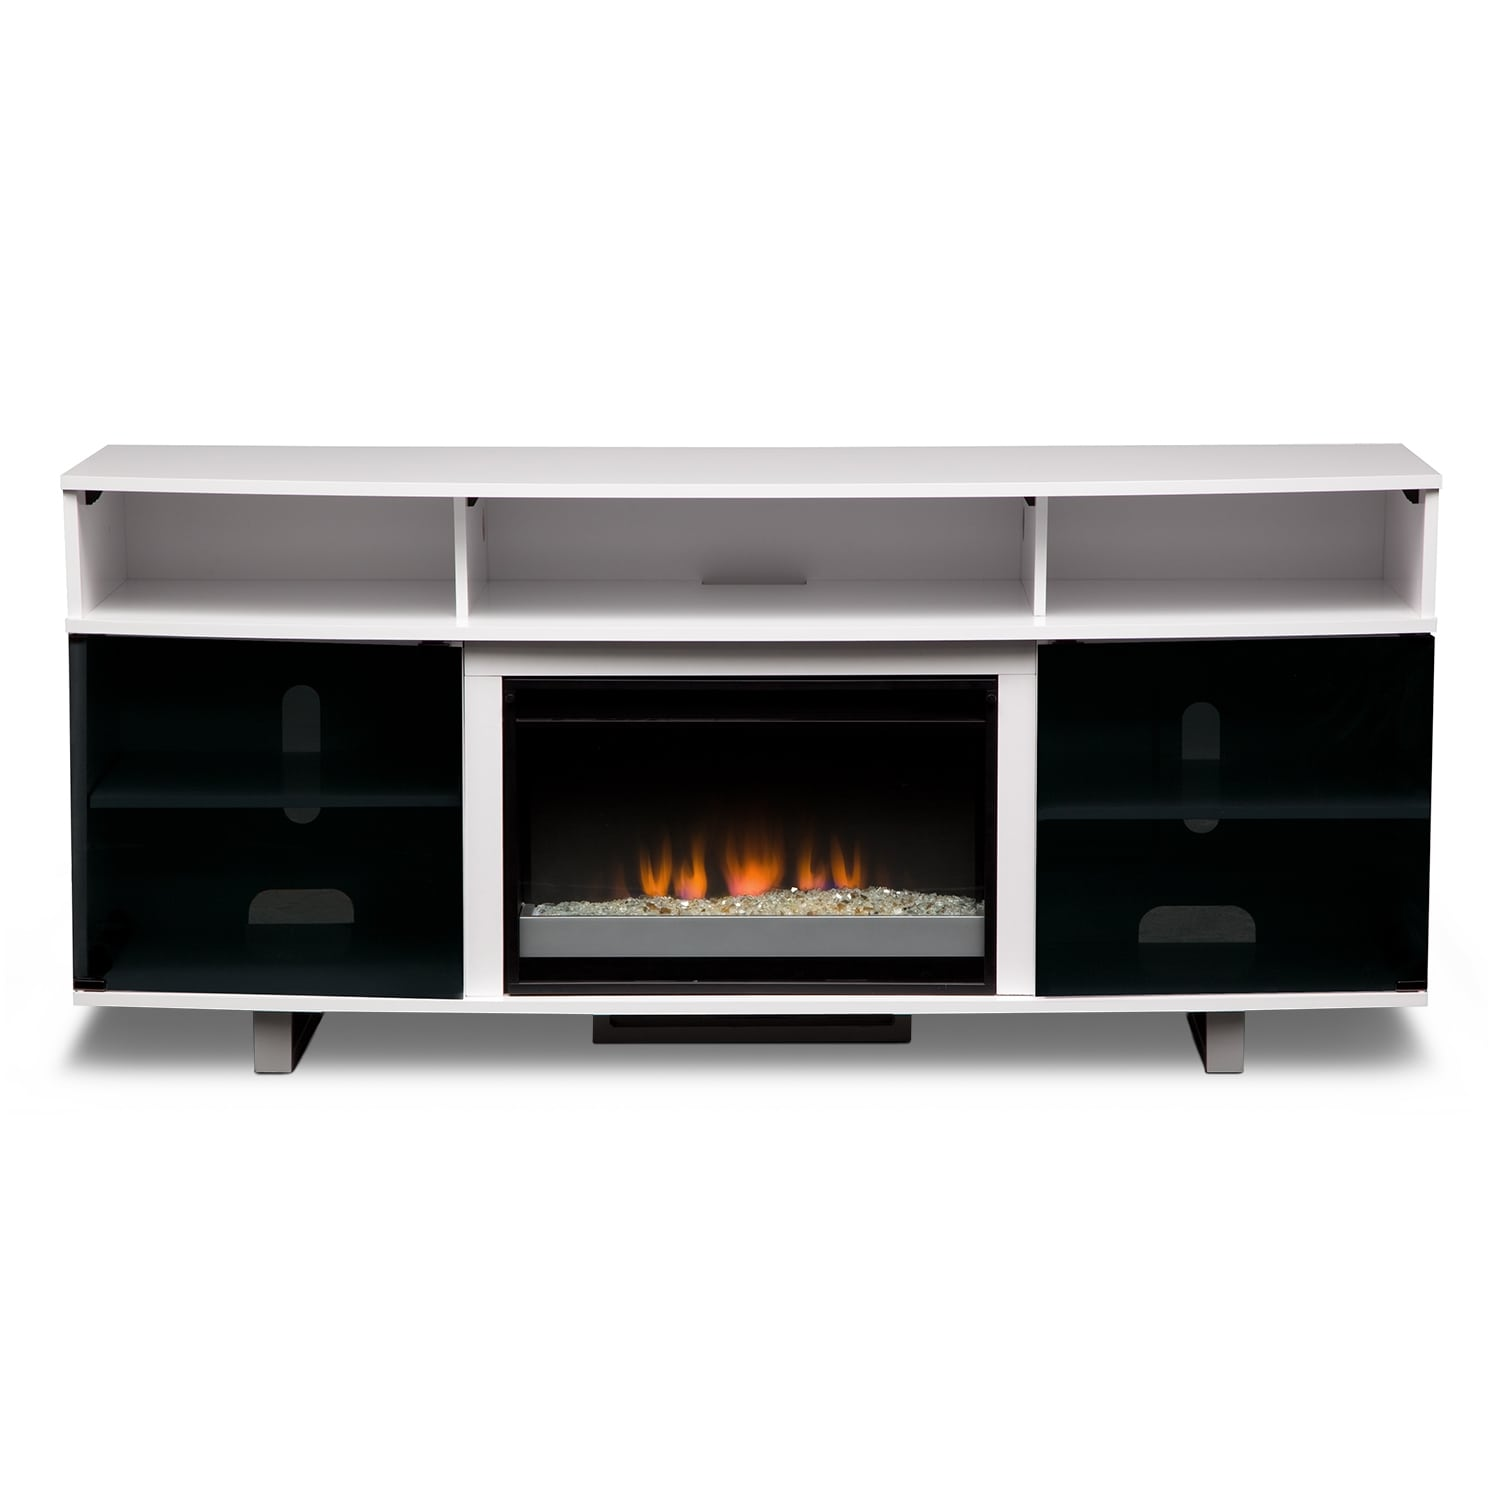 pacer  contemporary fireplace tv stand  white  value city  - click to change image